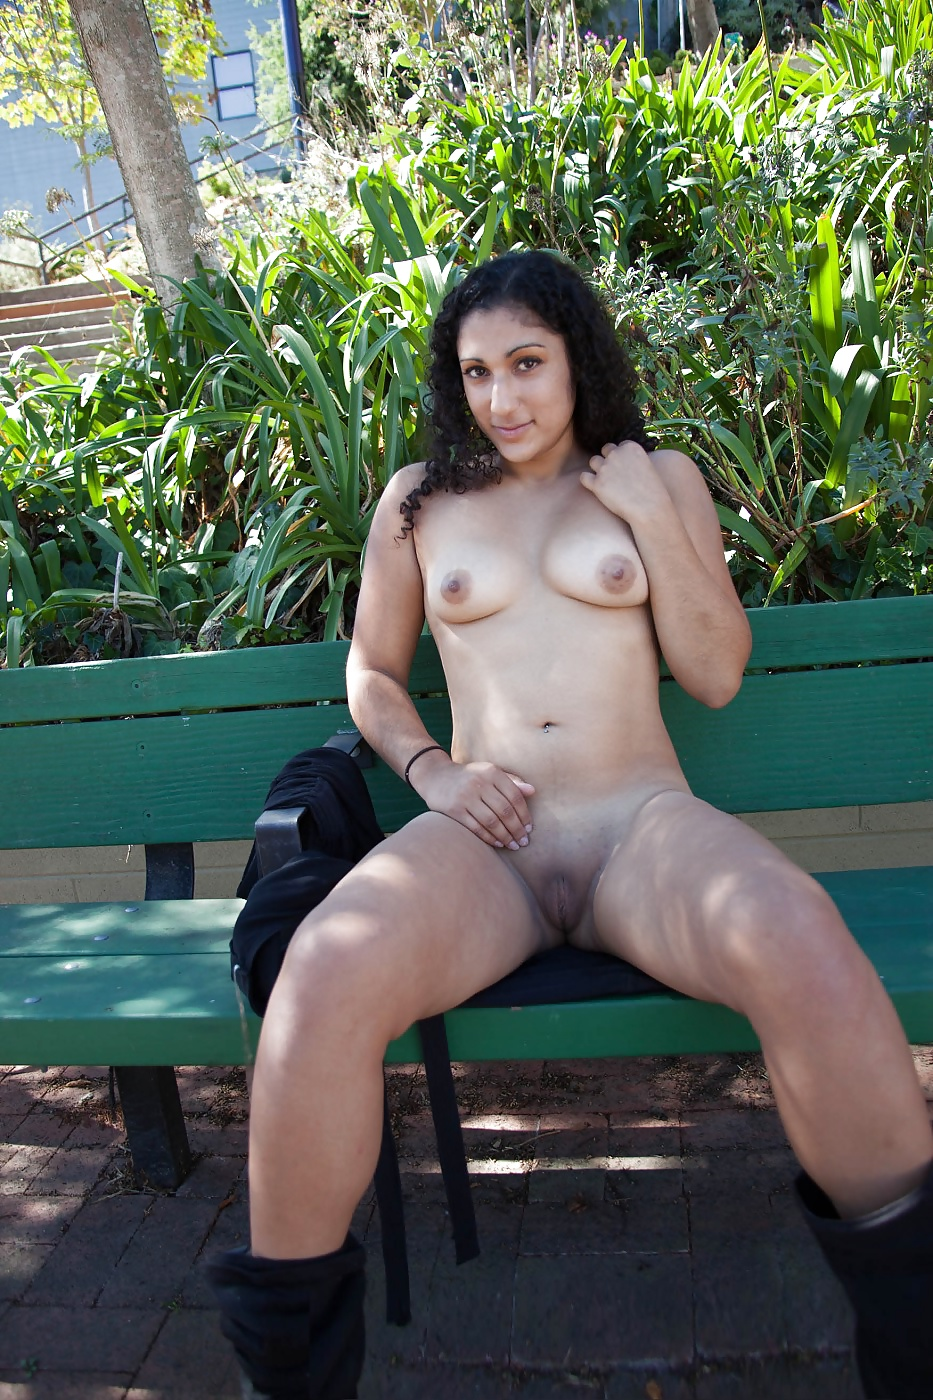 Naked ladies in public places-9735